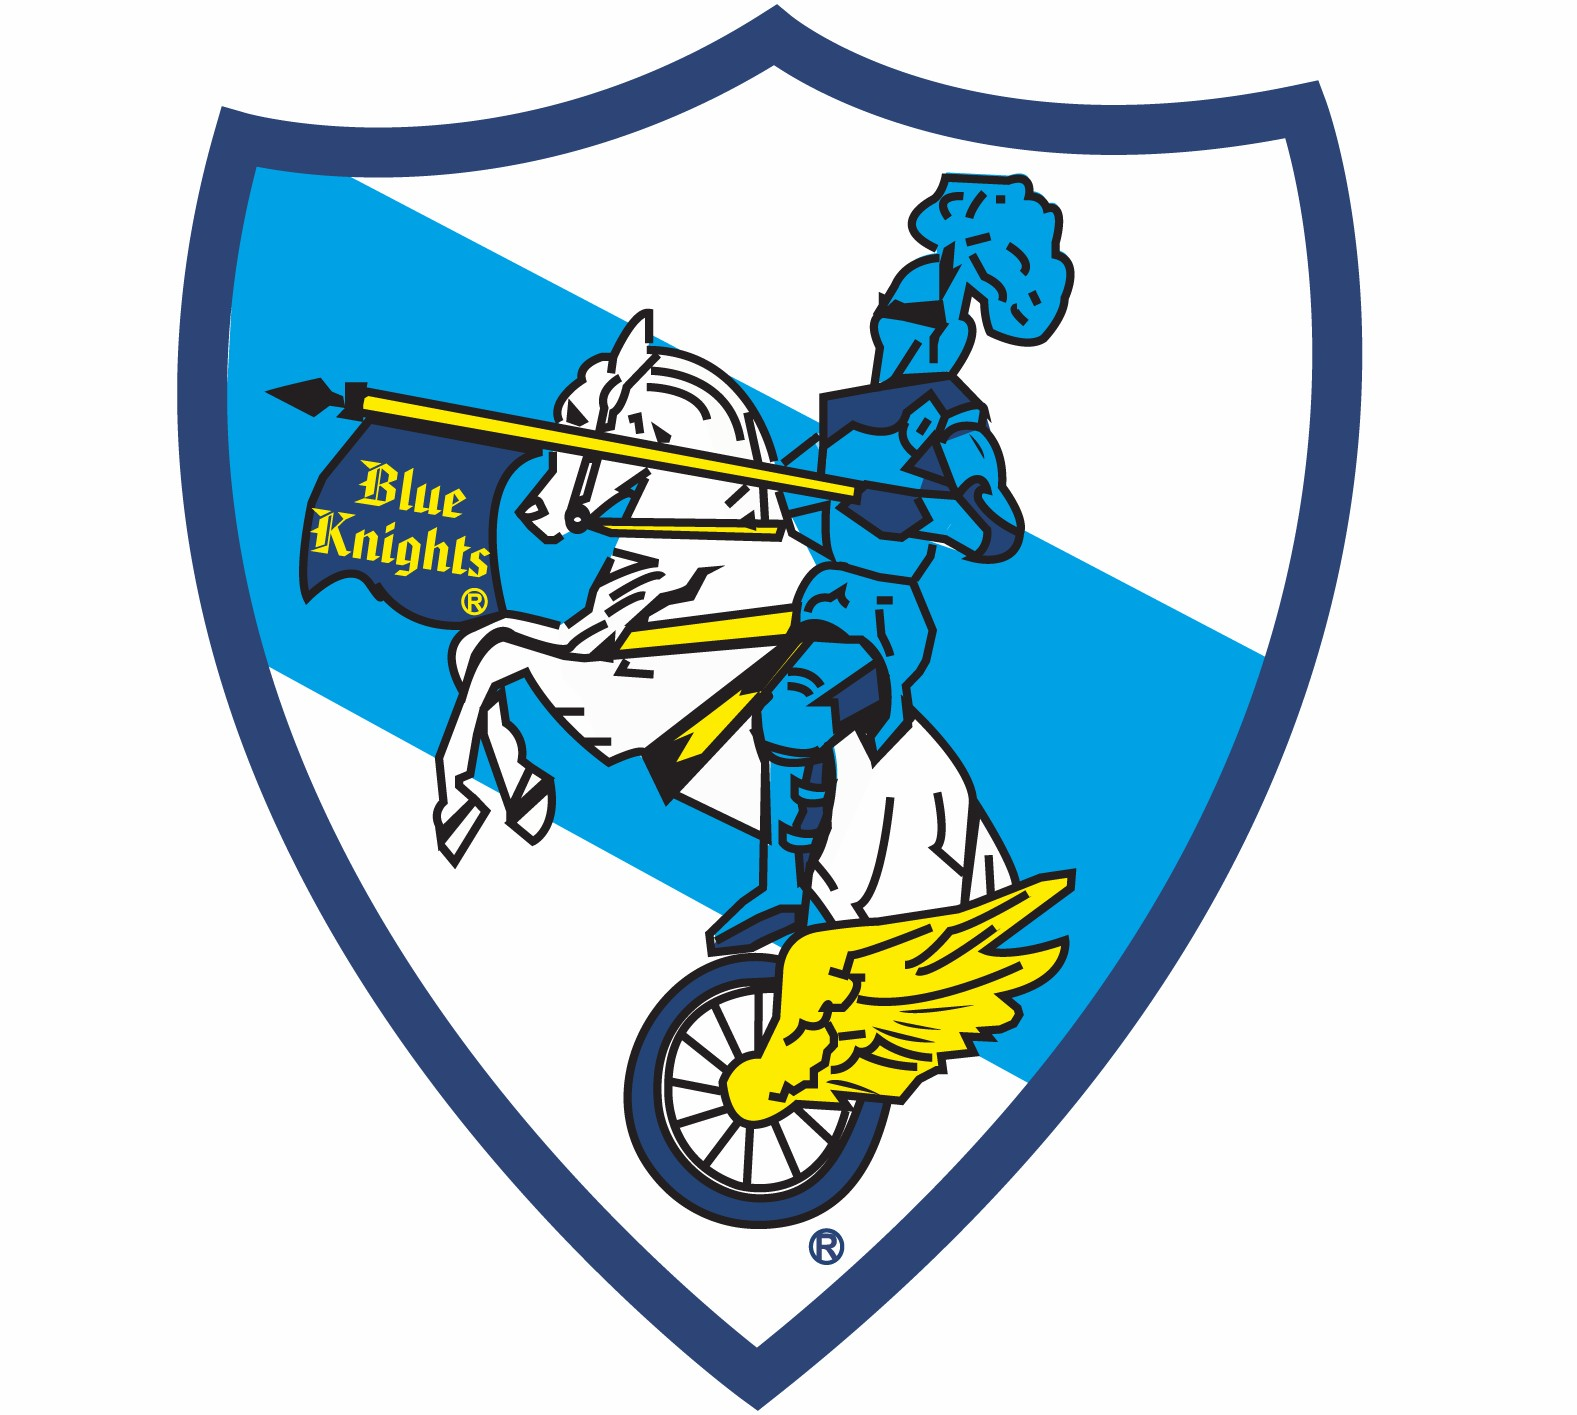 Blue Knights logo